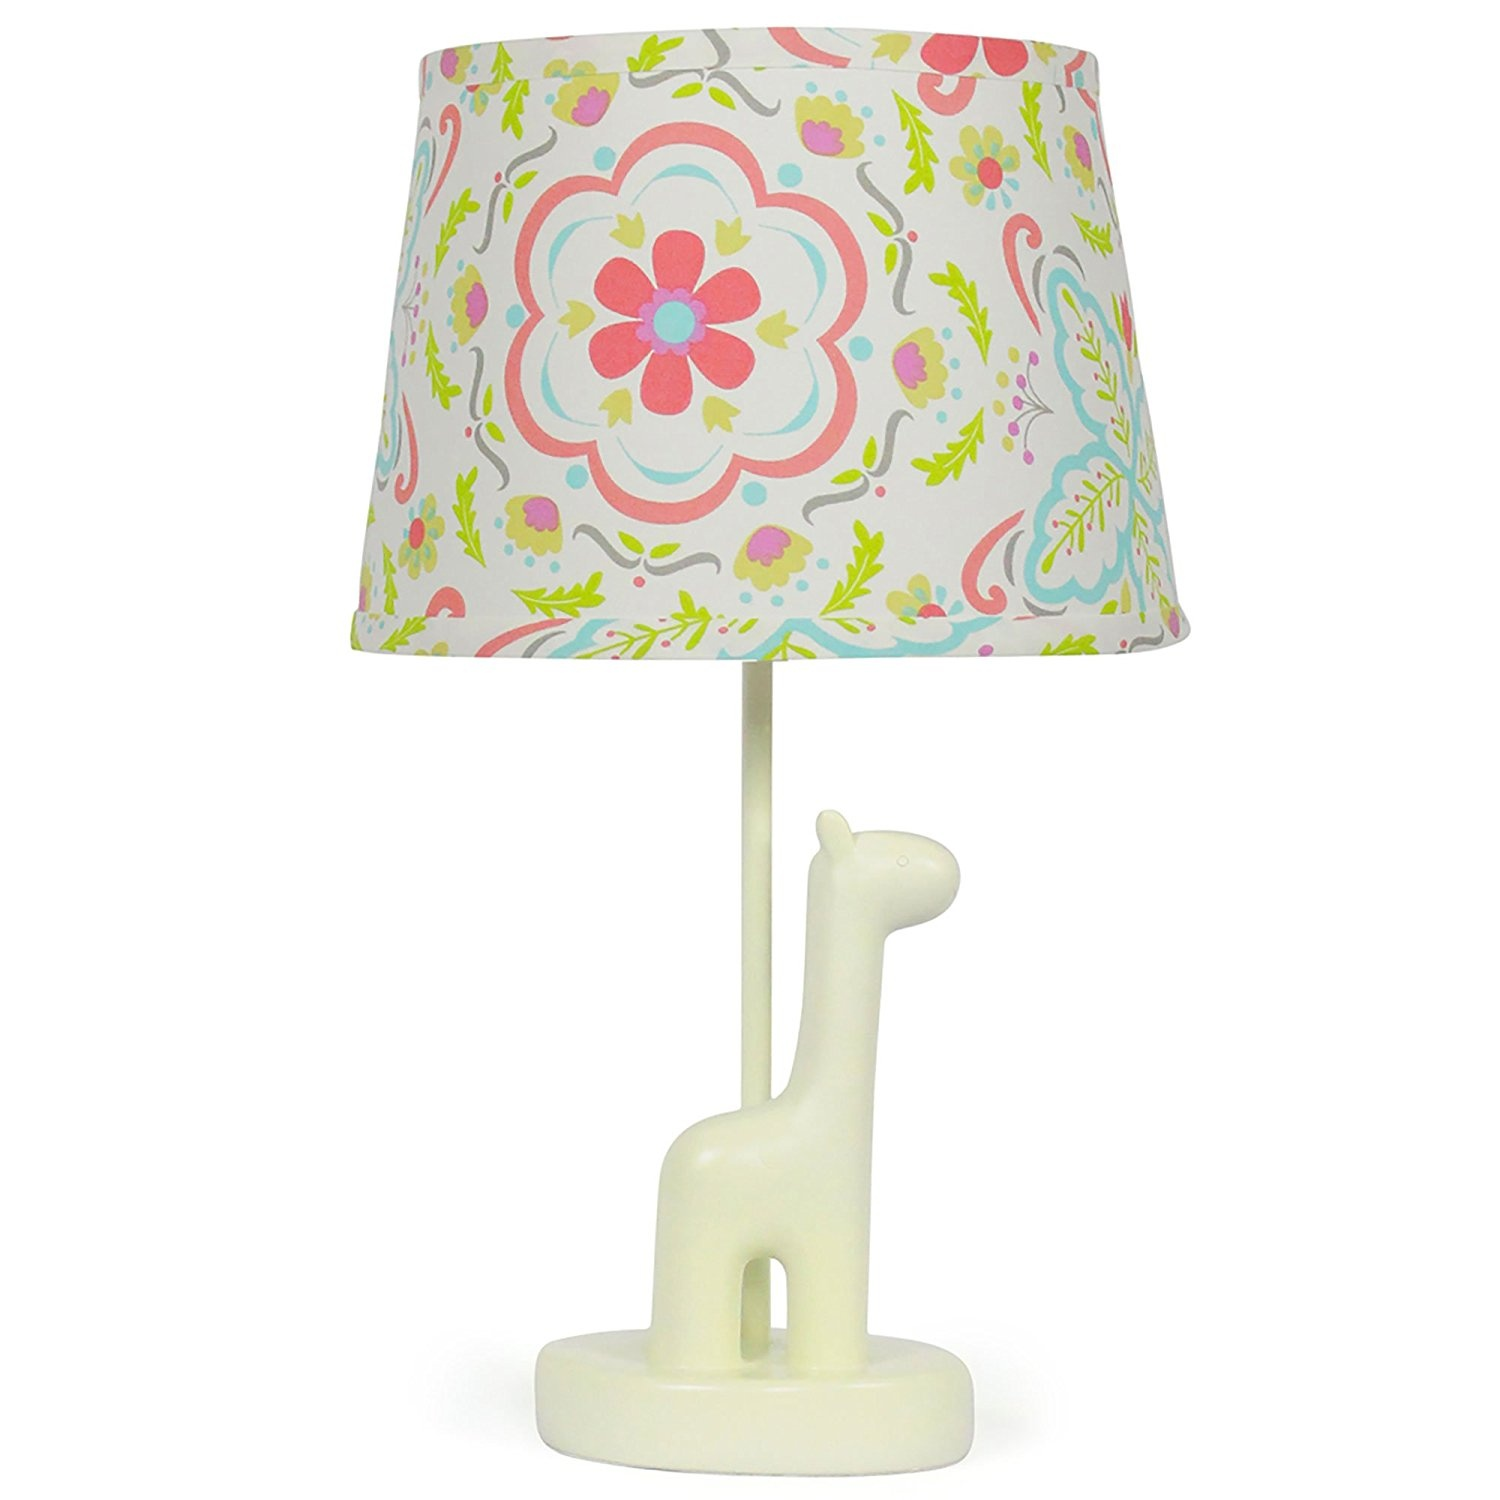 Coral floral nursery lamp shade with white giraffe base cfl bulb coral floral nursery lamp shade with white giraffe base cfl bulb included by the peanut shell shop online for baby in australia aloadofball Choice Image